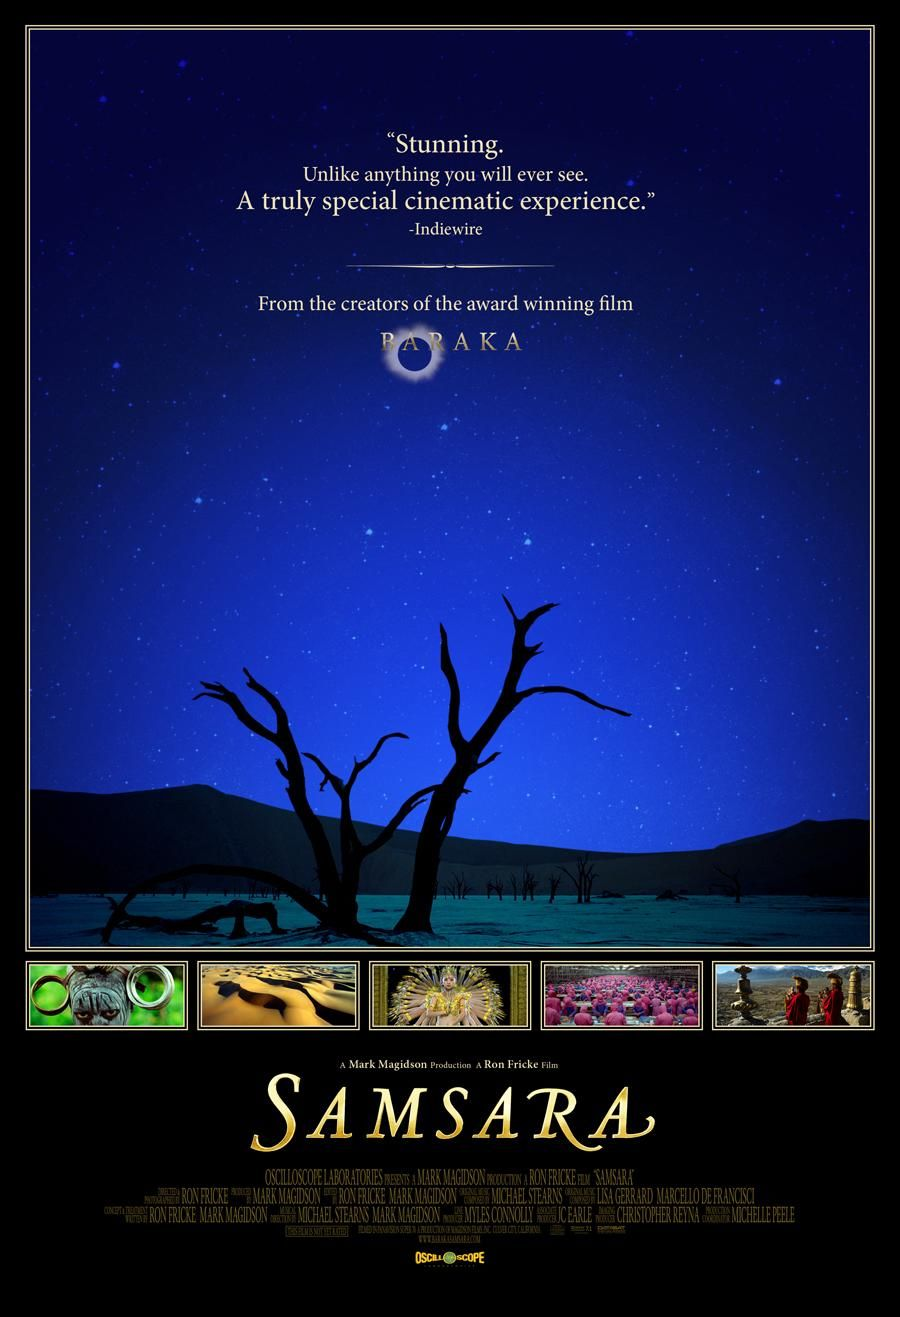 Must See This Film Could Help You >> Samsara A Must Watch Visually Stunning Film That Will Make